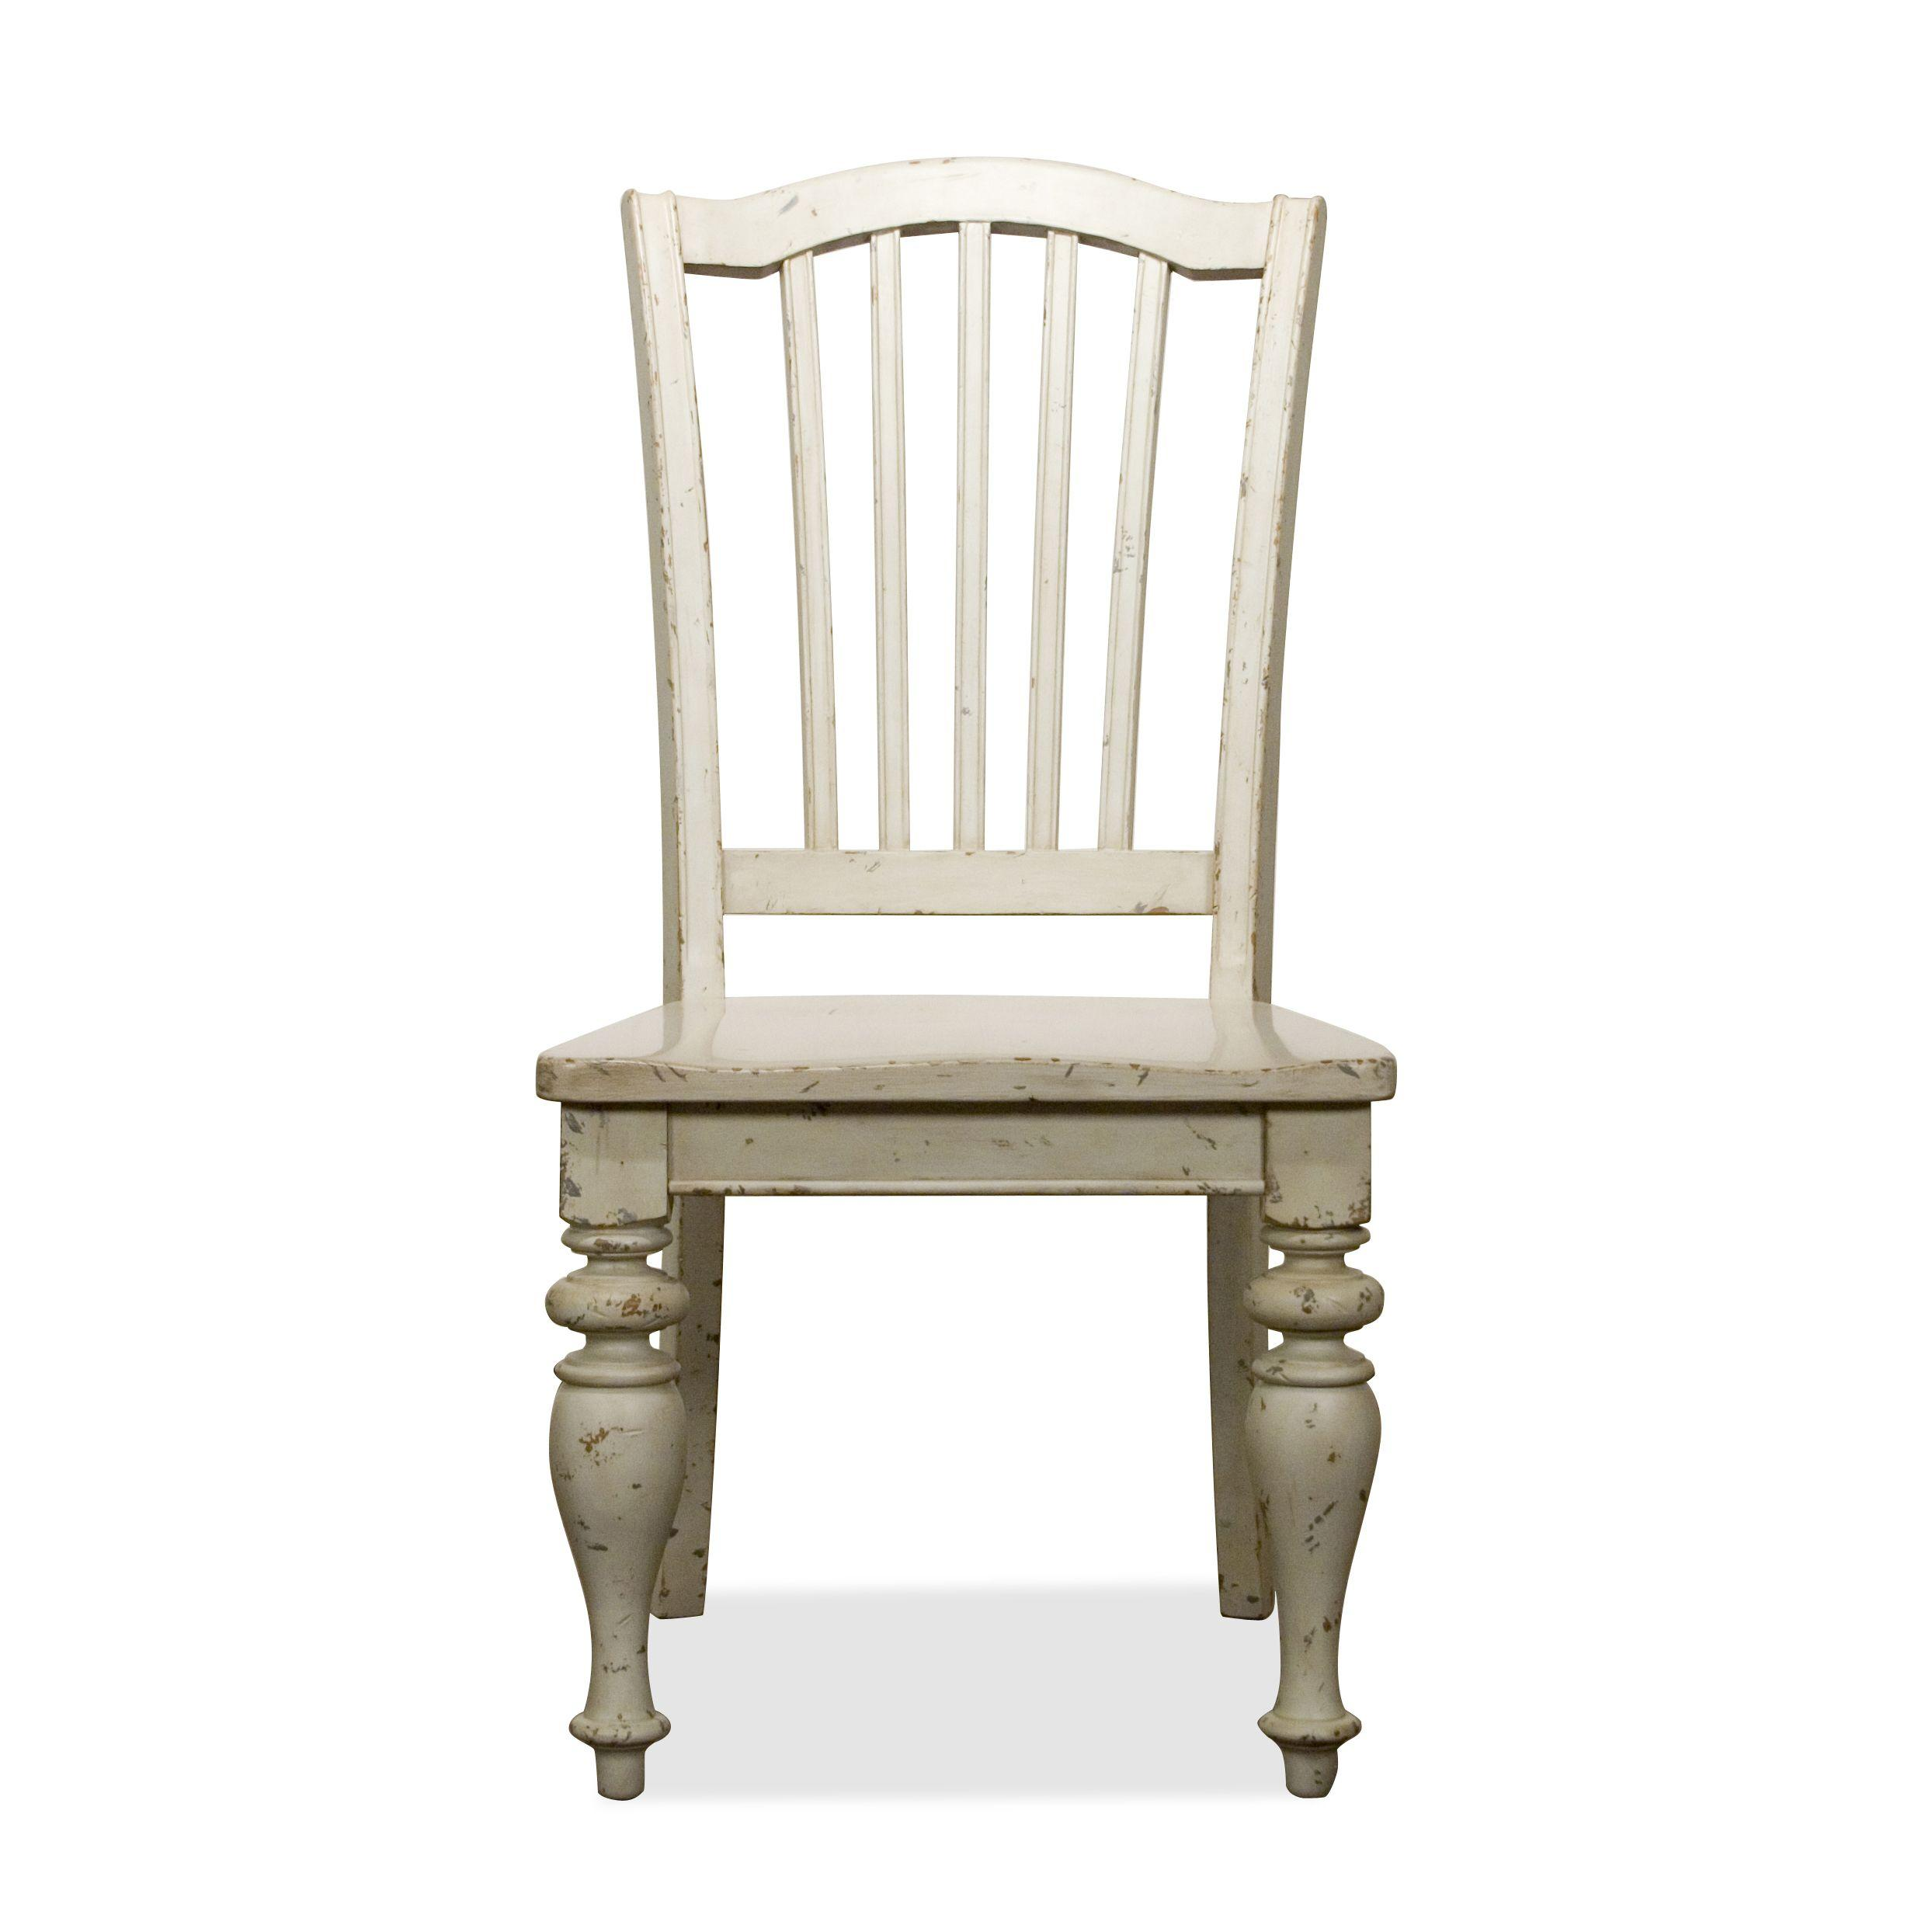 Mix N Match Chairs Dining Side Chair With Wooden Seat By Riverside Furniture